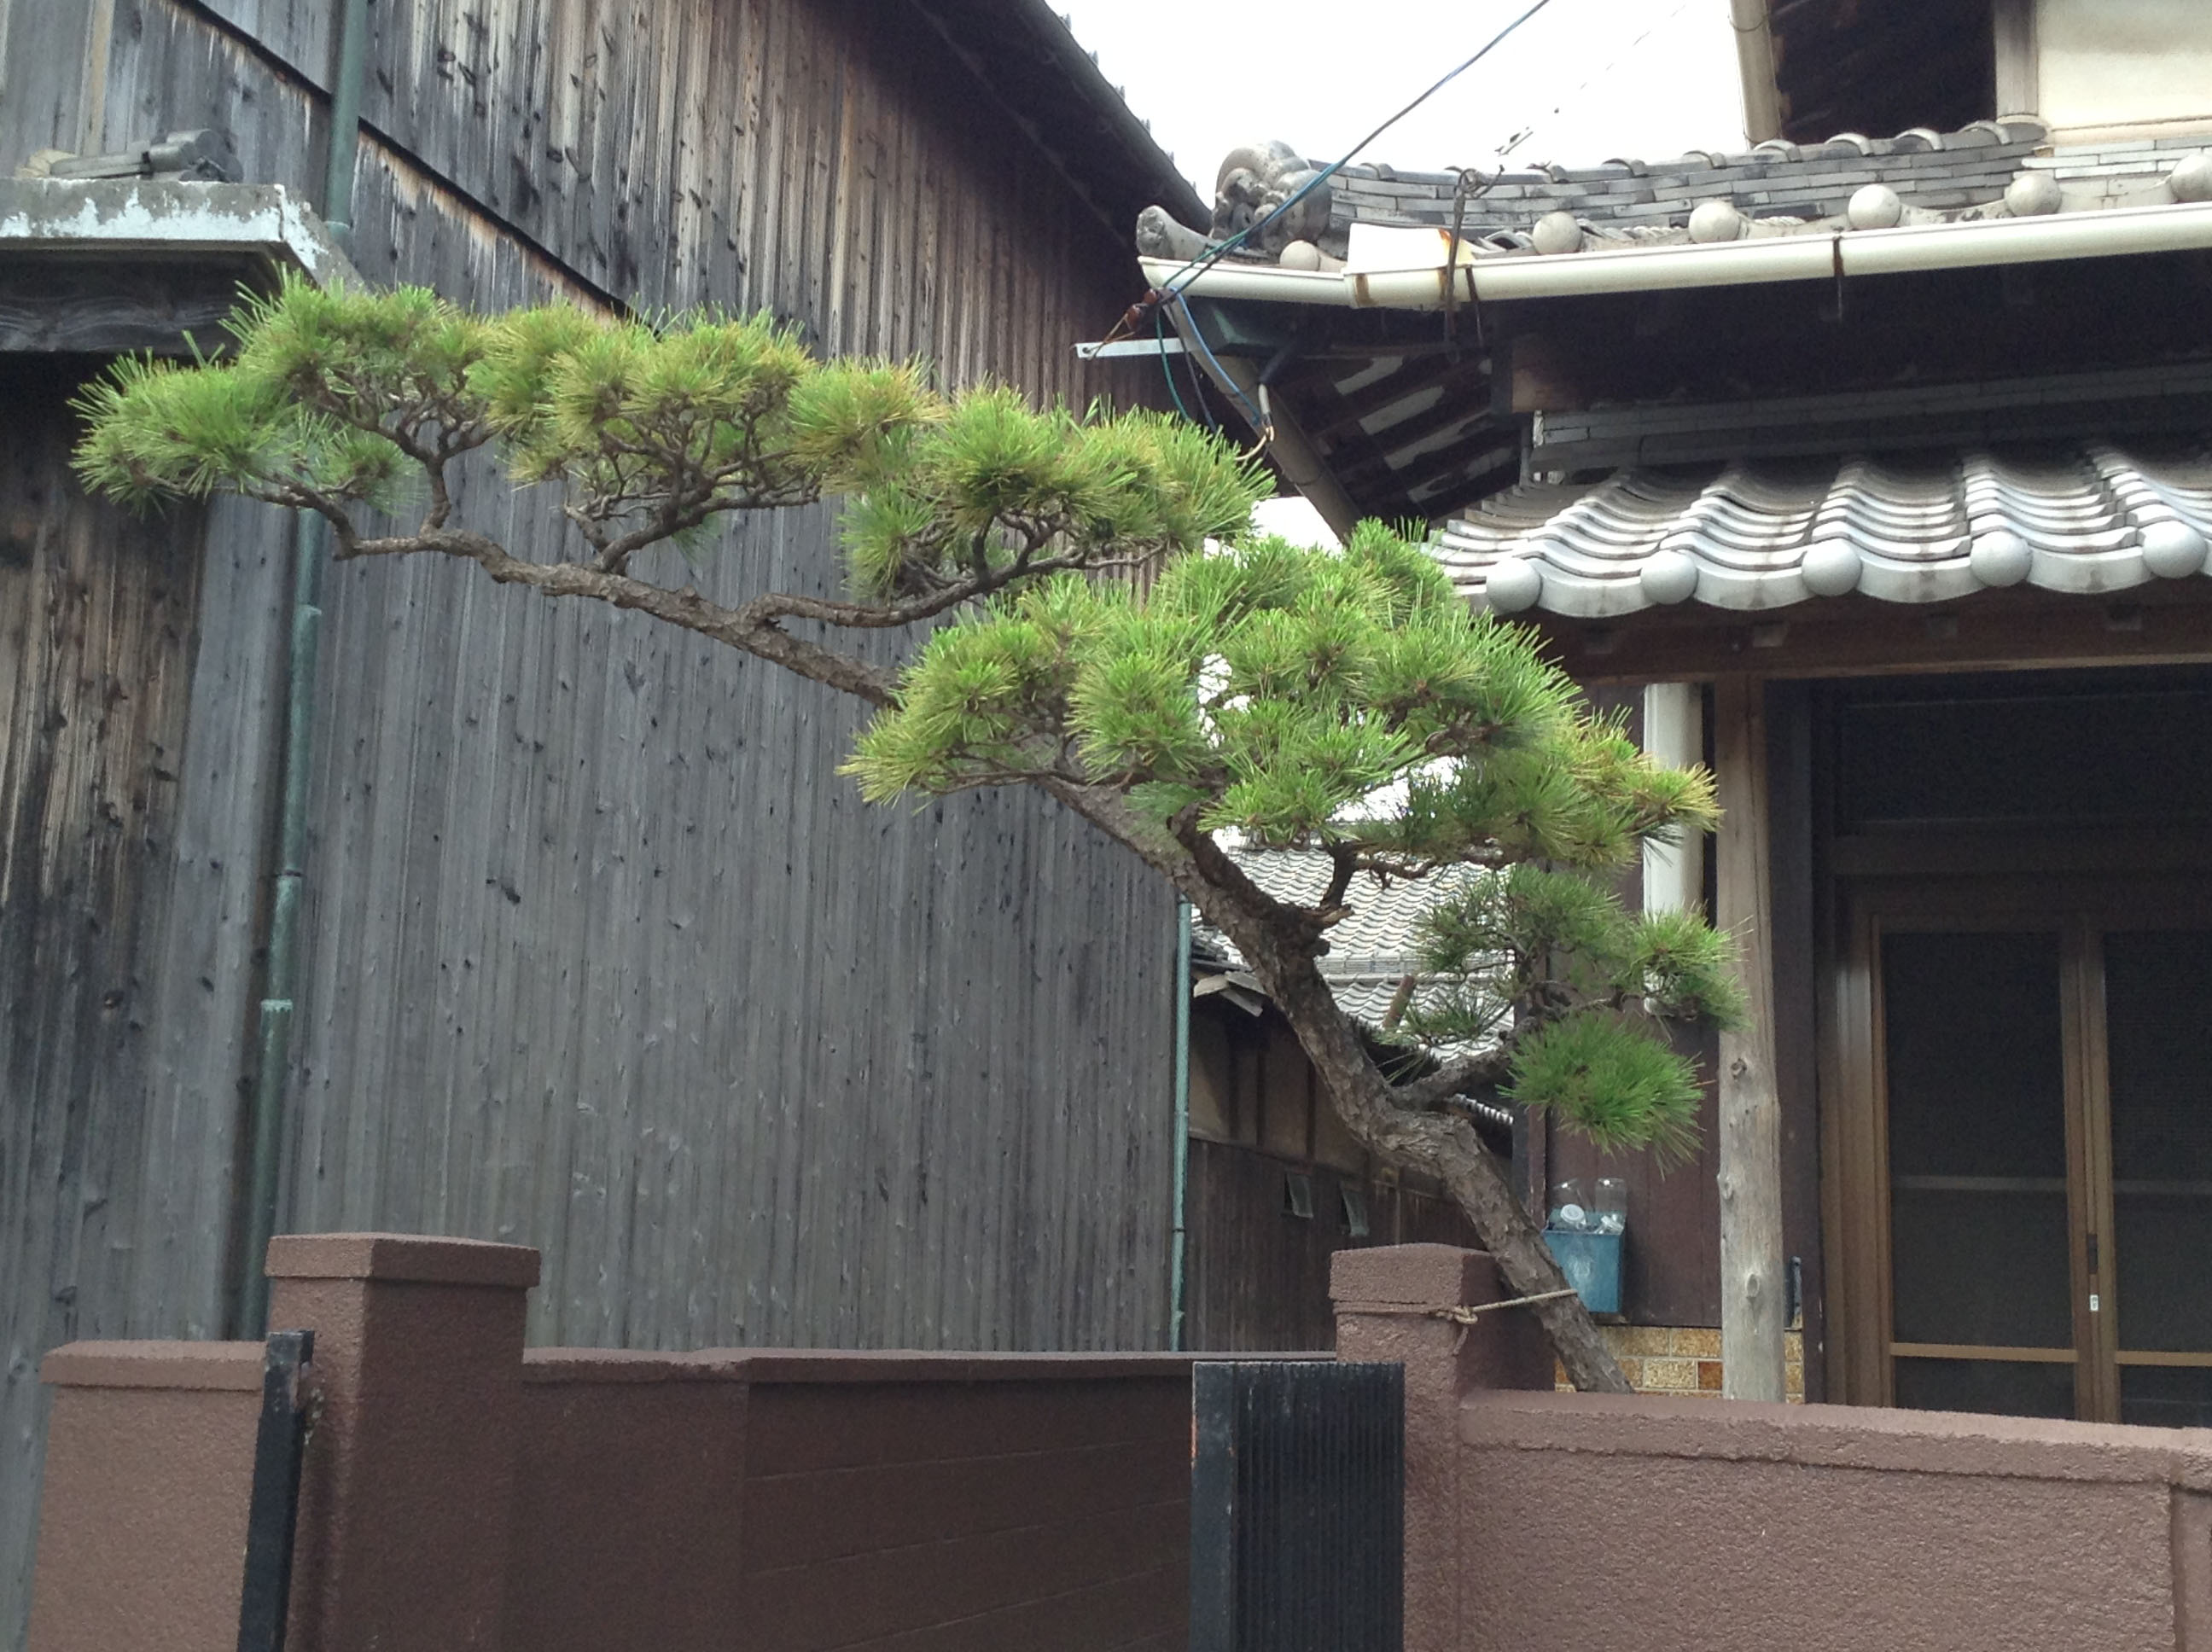 The pine branch arching over the entrance to a house is a common Japanese landscaping technique. The pine tree is a symbol of longevity in Japan.   AMY CHAVEZ